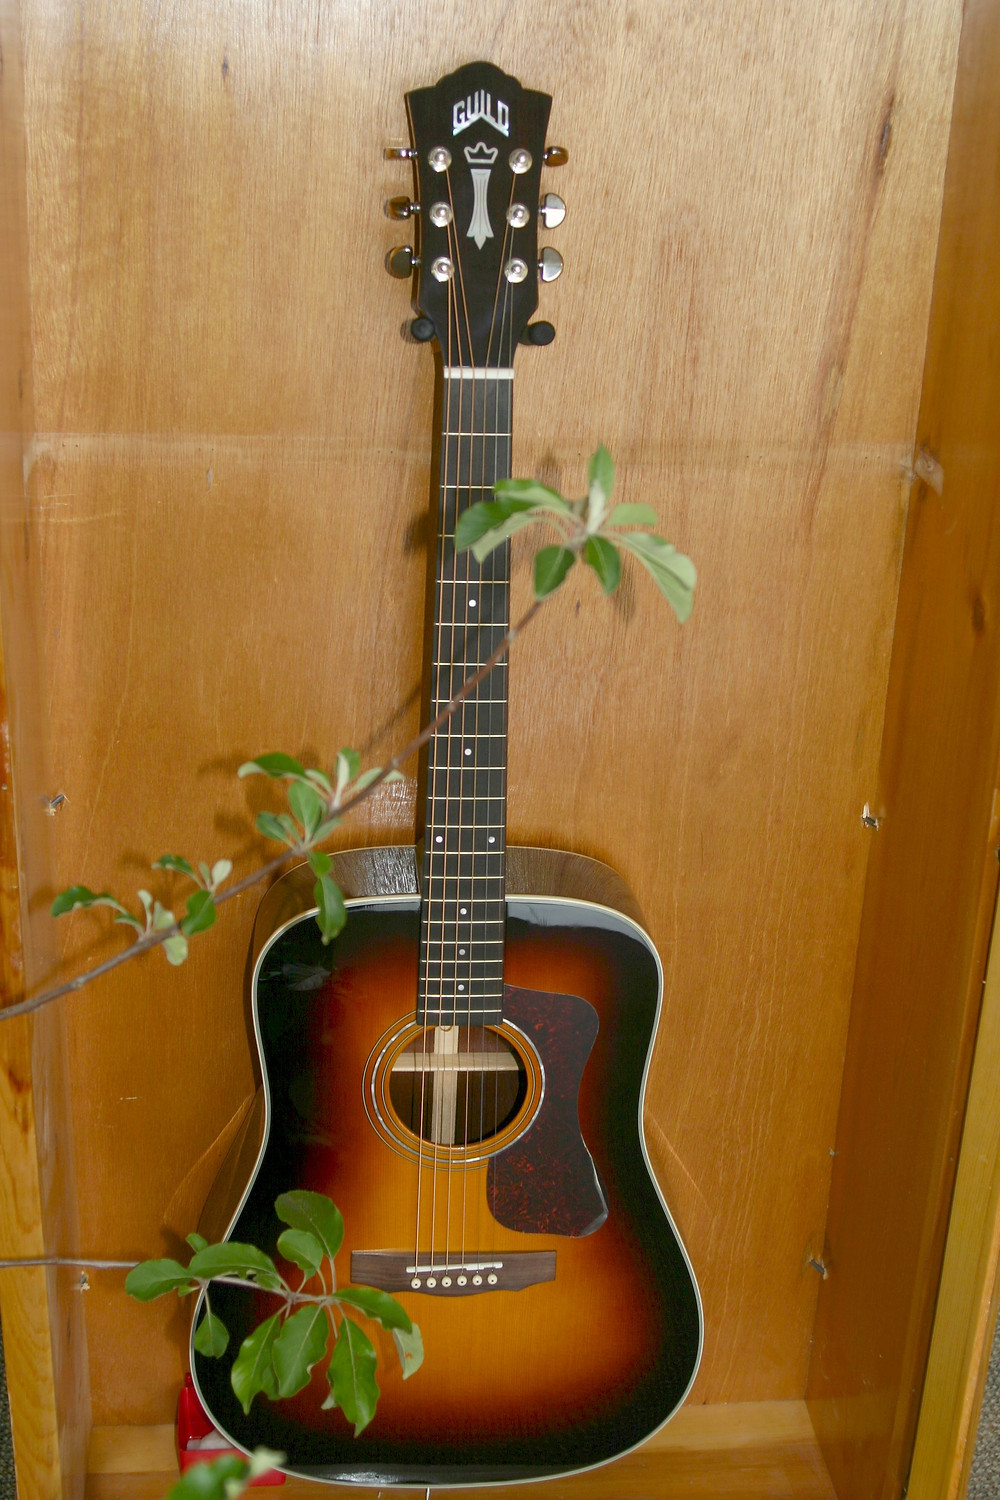 Guild All Solid Wood Dreadnaught acoustic guitar